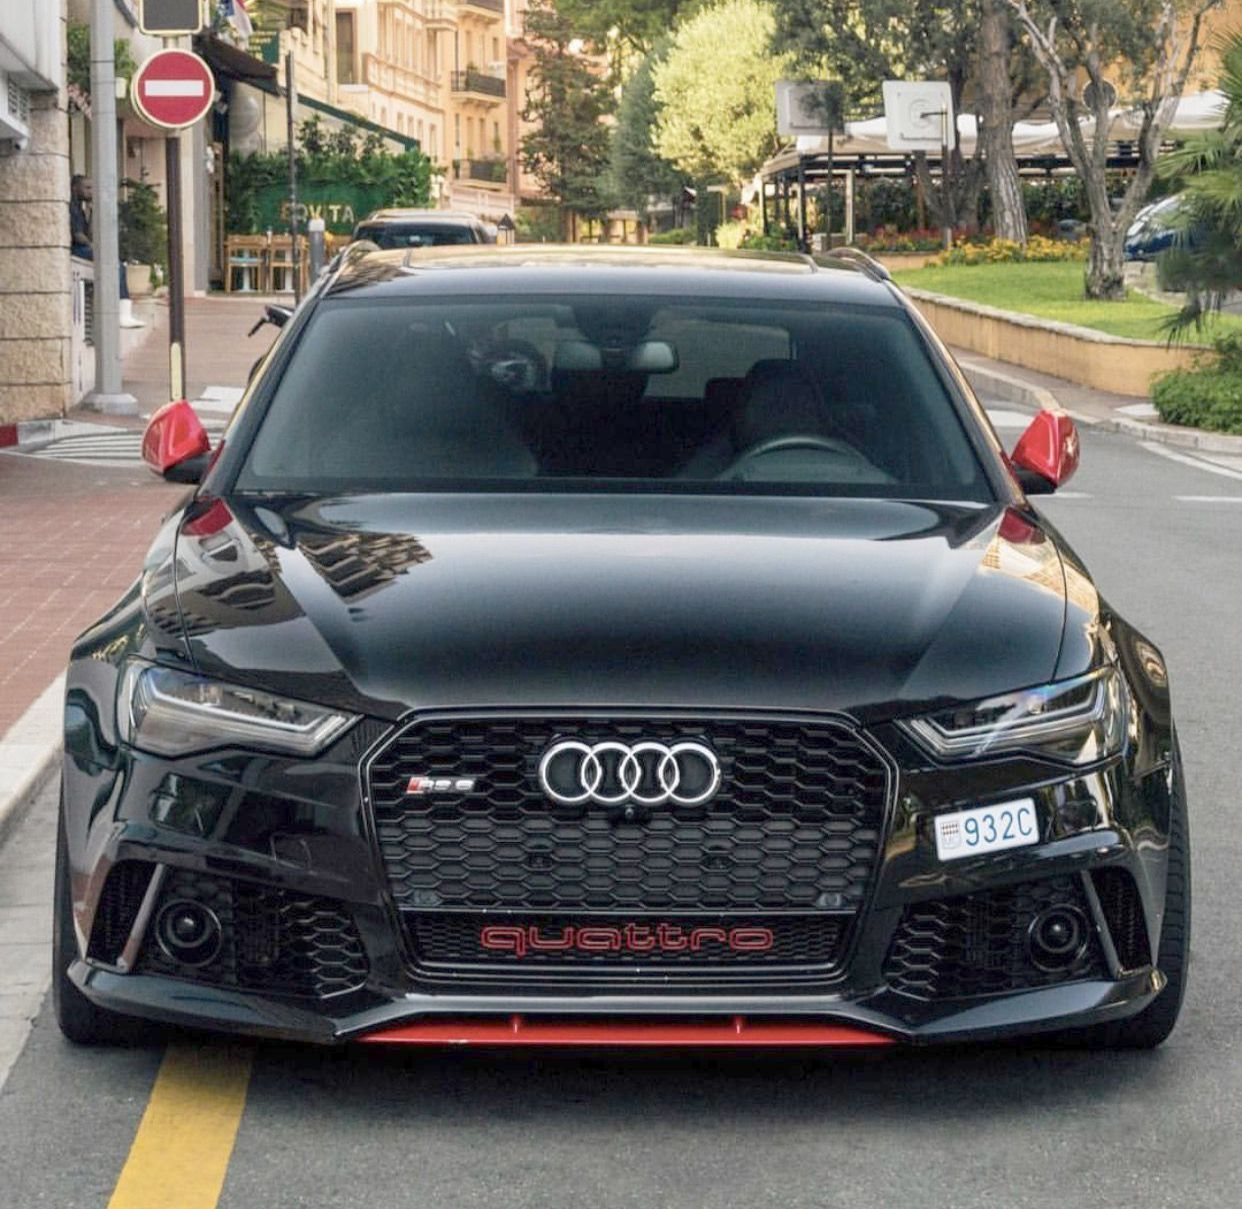 Cars For Sale By Owner Near Me every Buying Cars Off Ebay